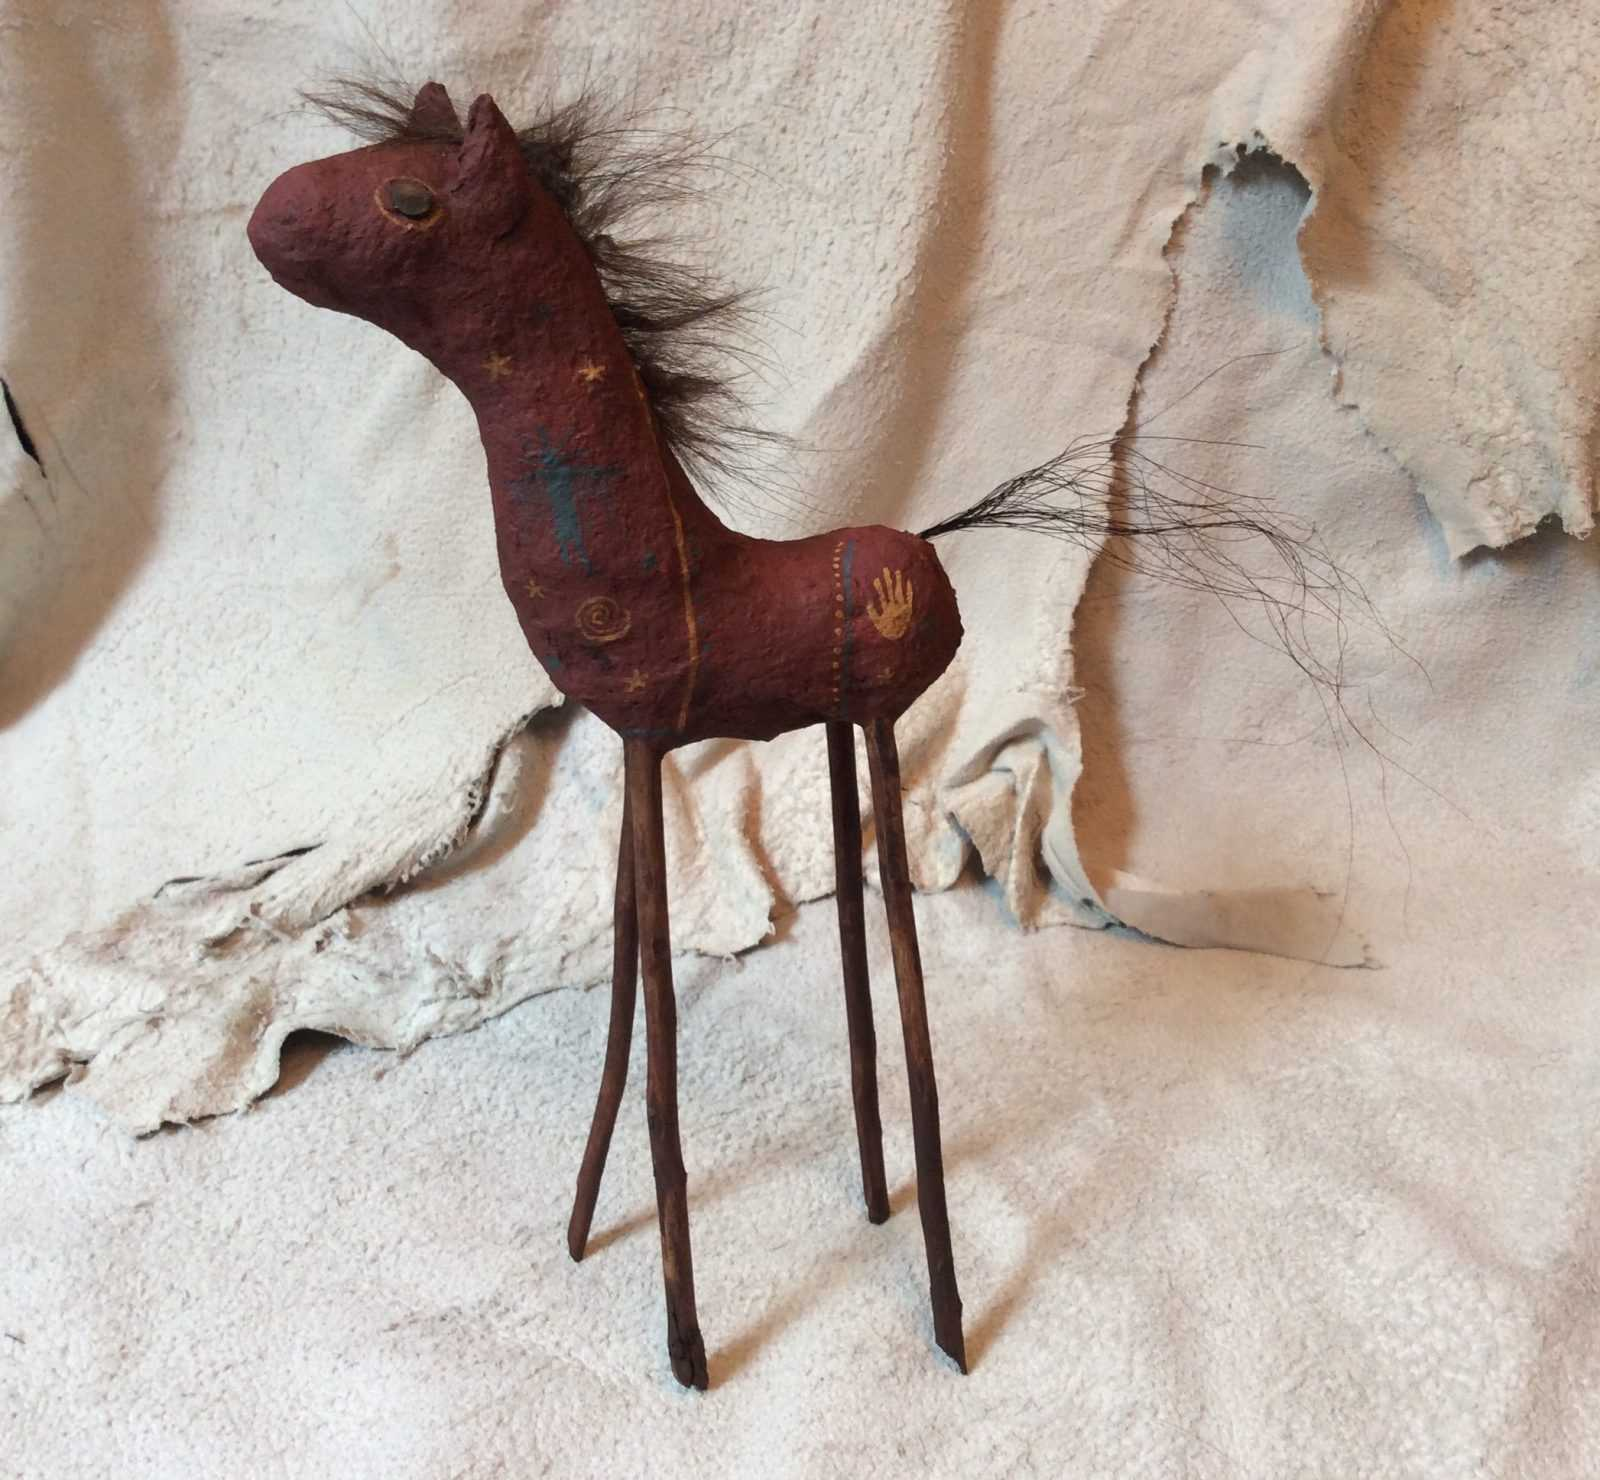 horse sculpture with sticks and recycled objects